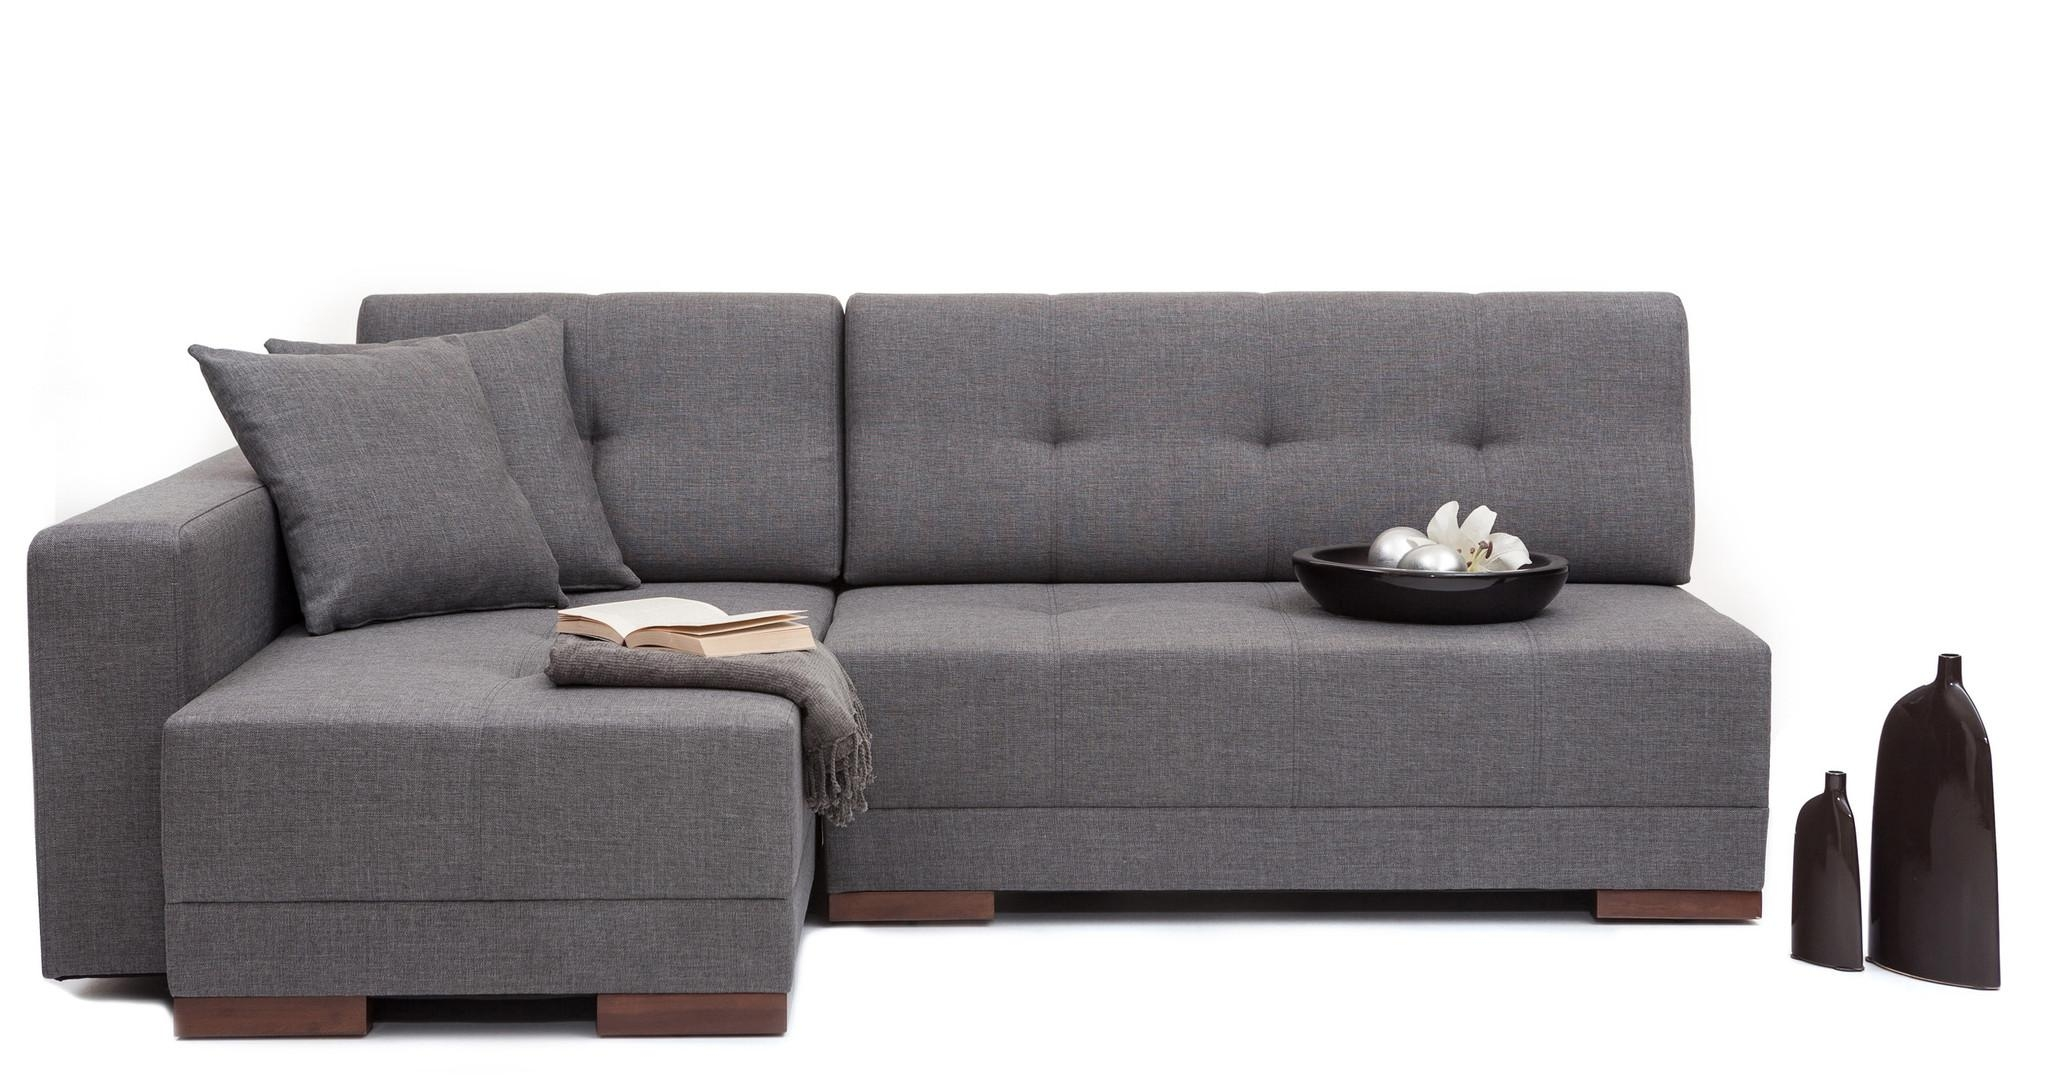 Sofas : Fabulous Leather Sofa Covers Sofa Bed Canada Cheap Sofas In Sofas With Beds (Image 18 of 22)